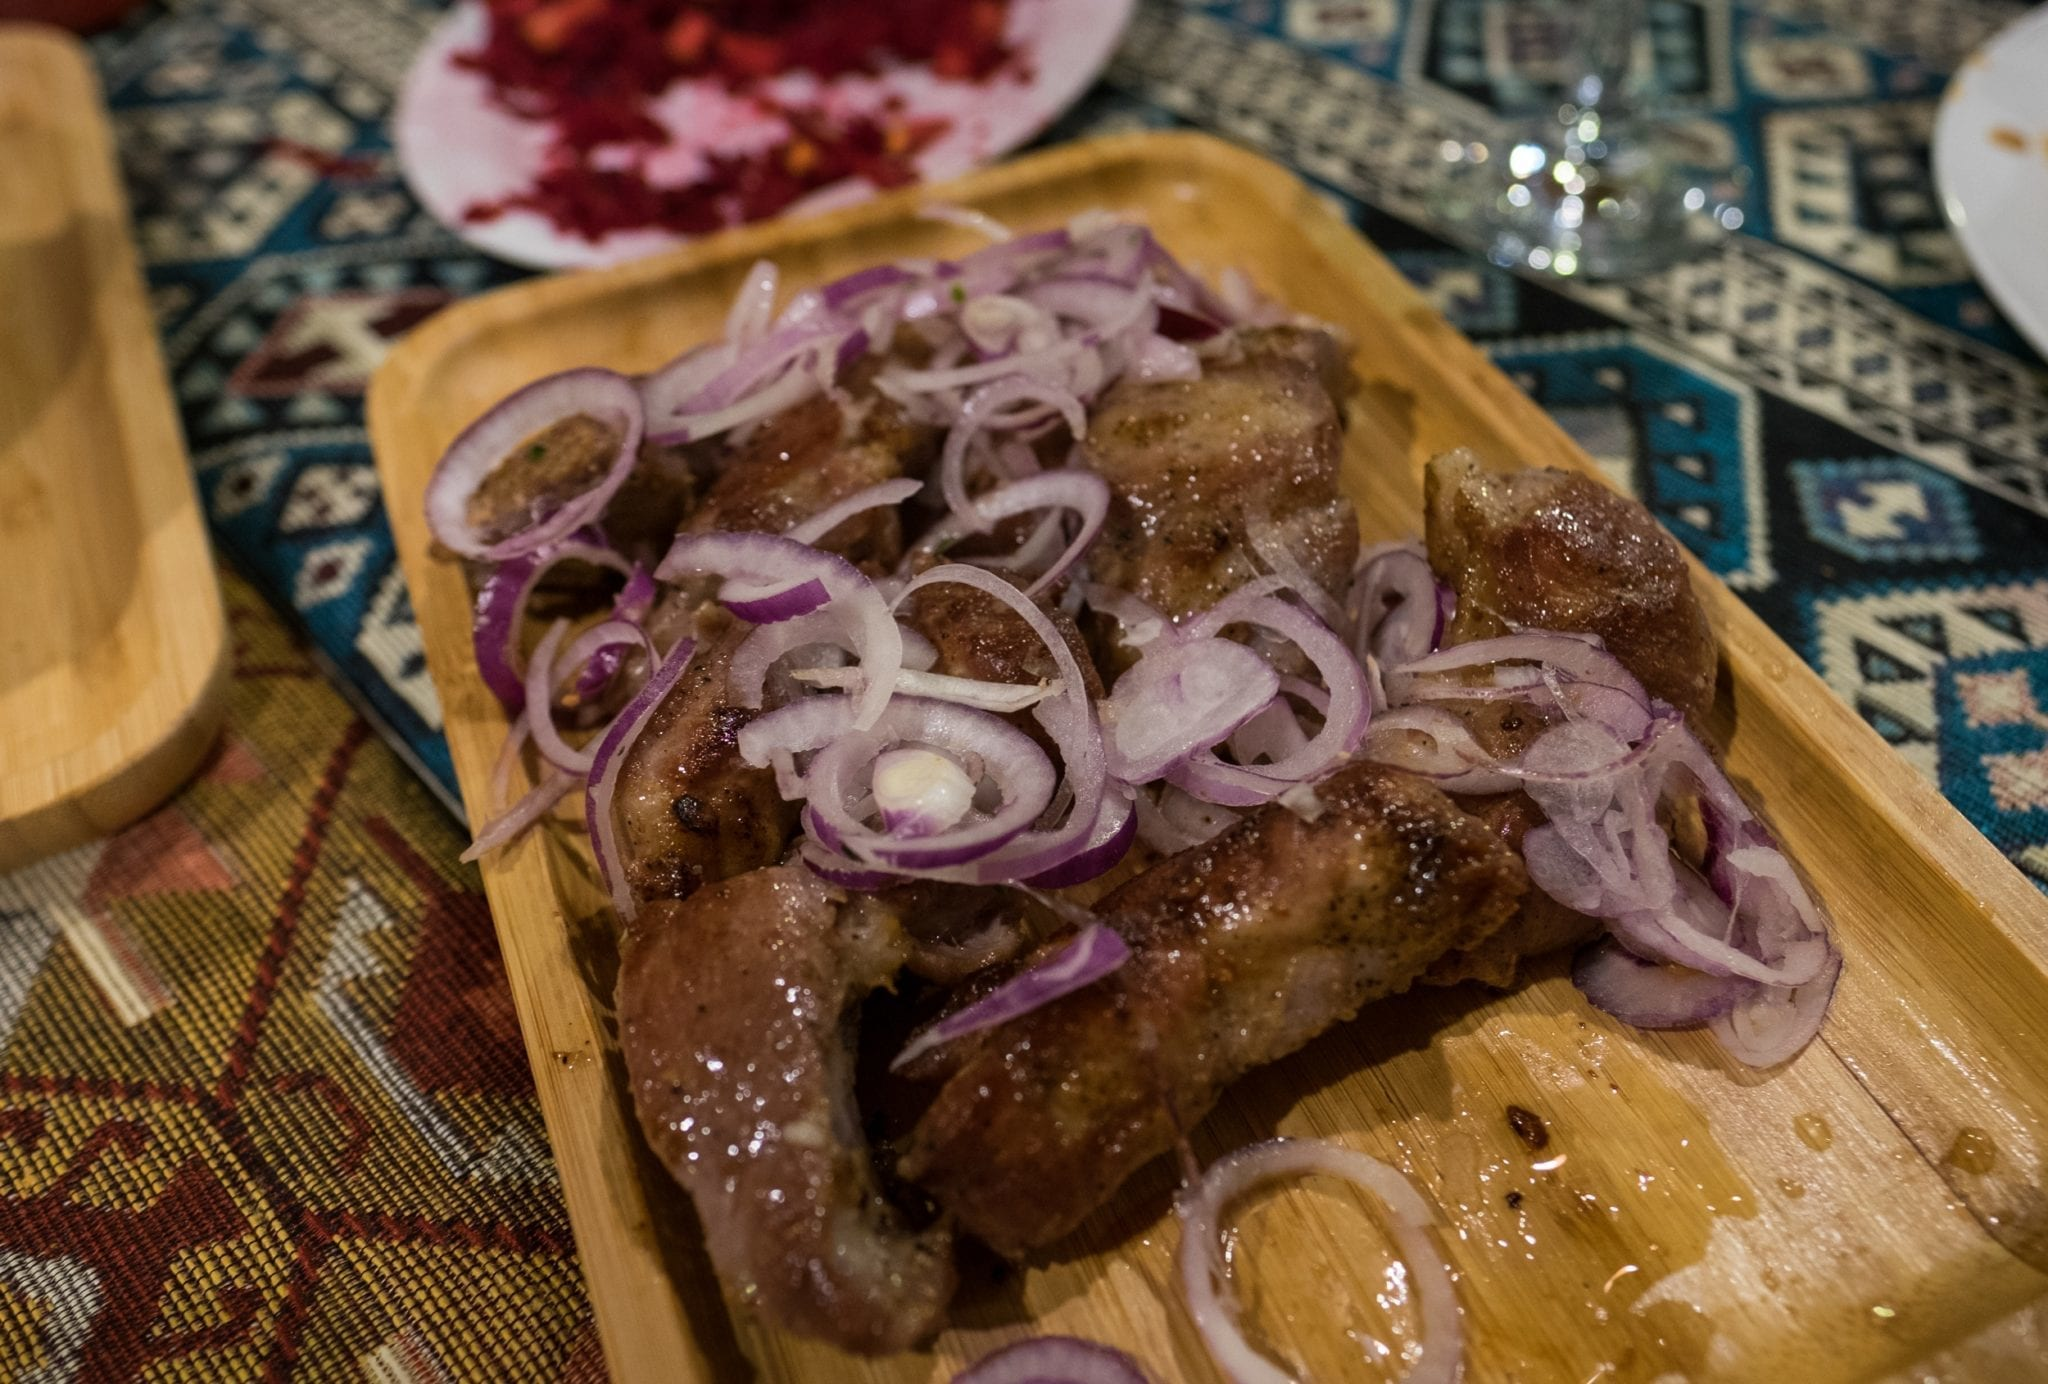 A wooden platter topped with (probably overcooked) pork strips, topped with raw red onions.